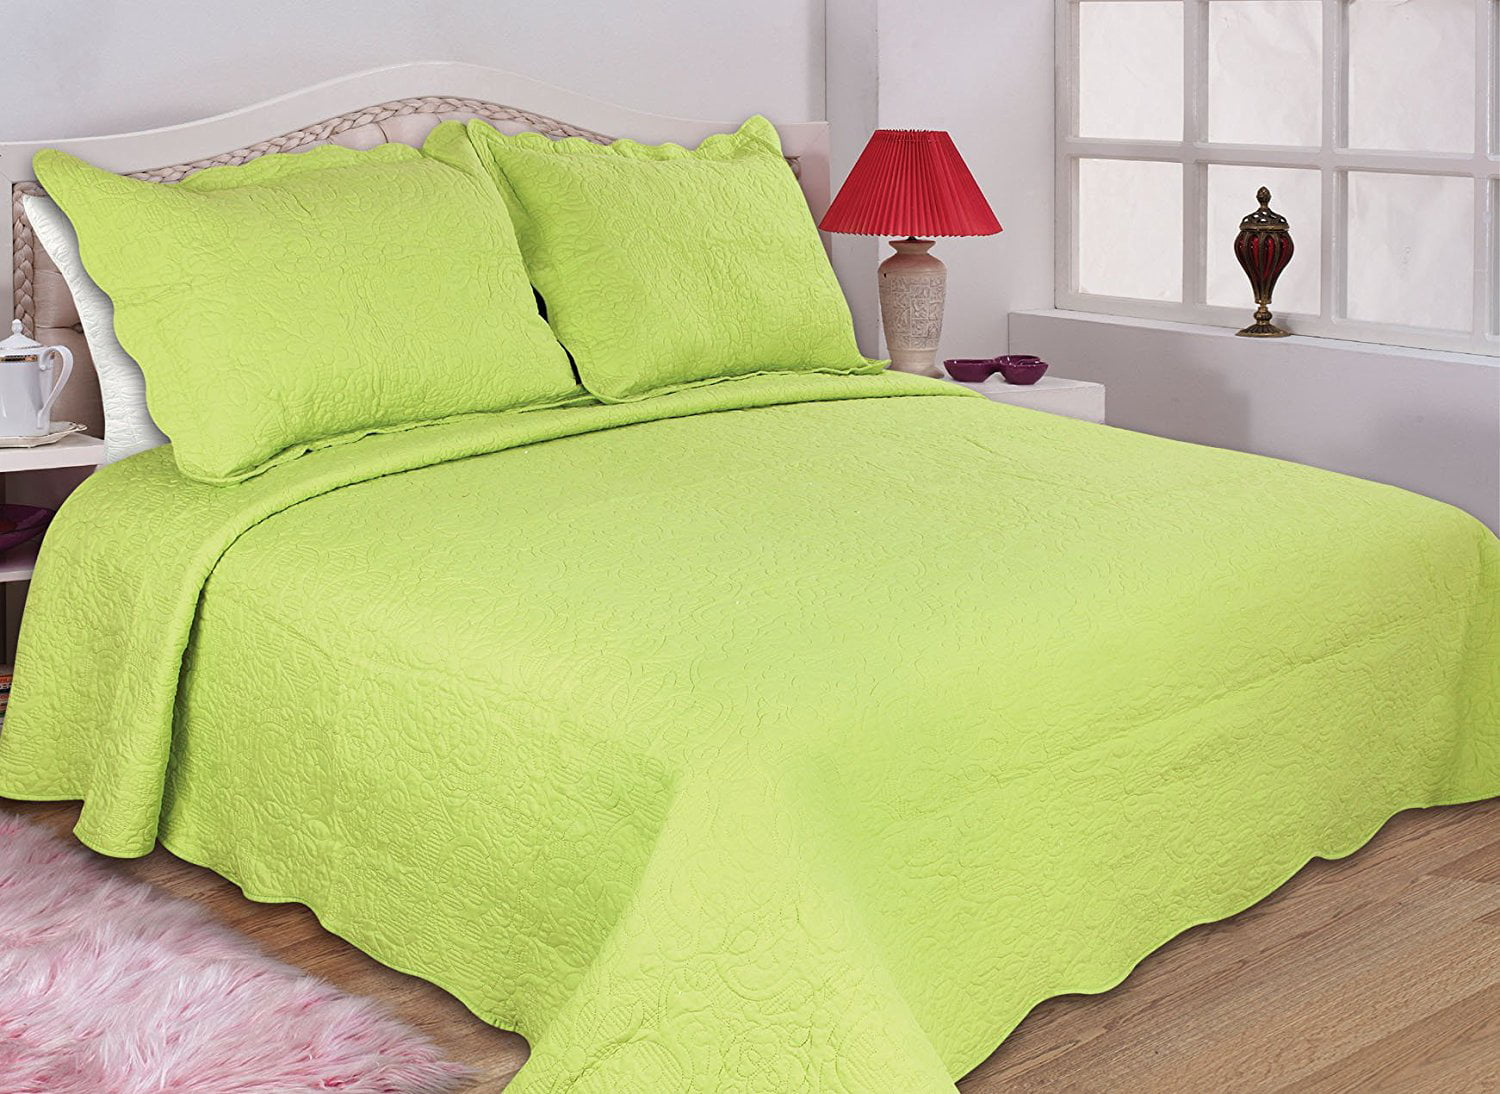 All For You 2pc Reversible Quilt Set Bedspread And Coverlet 3 Different Sizes Lime Green Color Twin 68 X 86 With 1 Standard Pillow Sham Nbsp Walmart Com Walmart Com